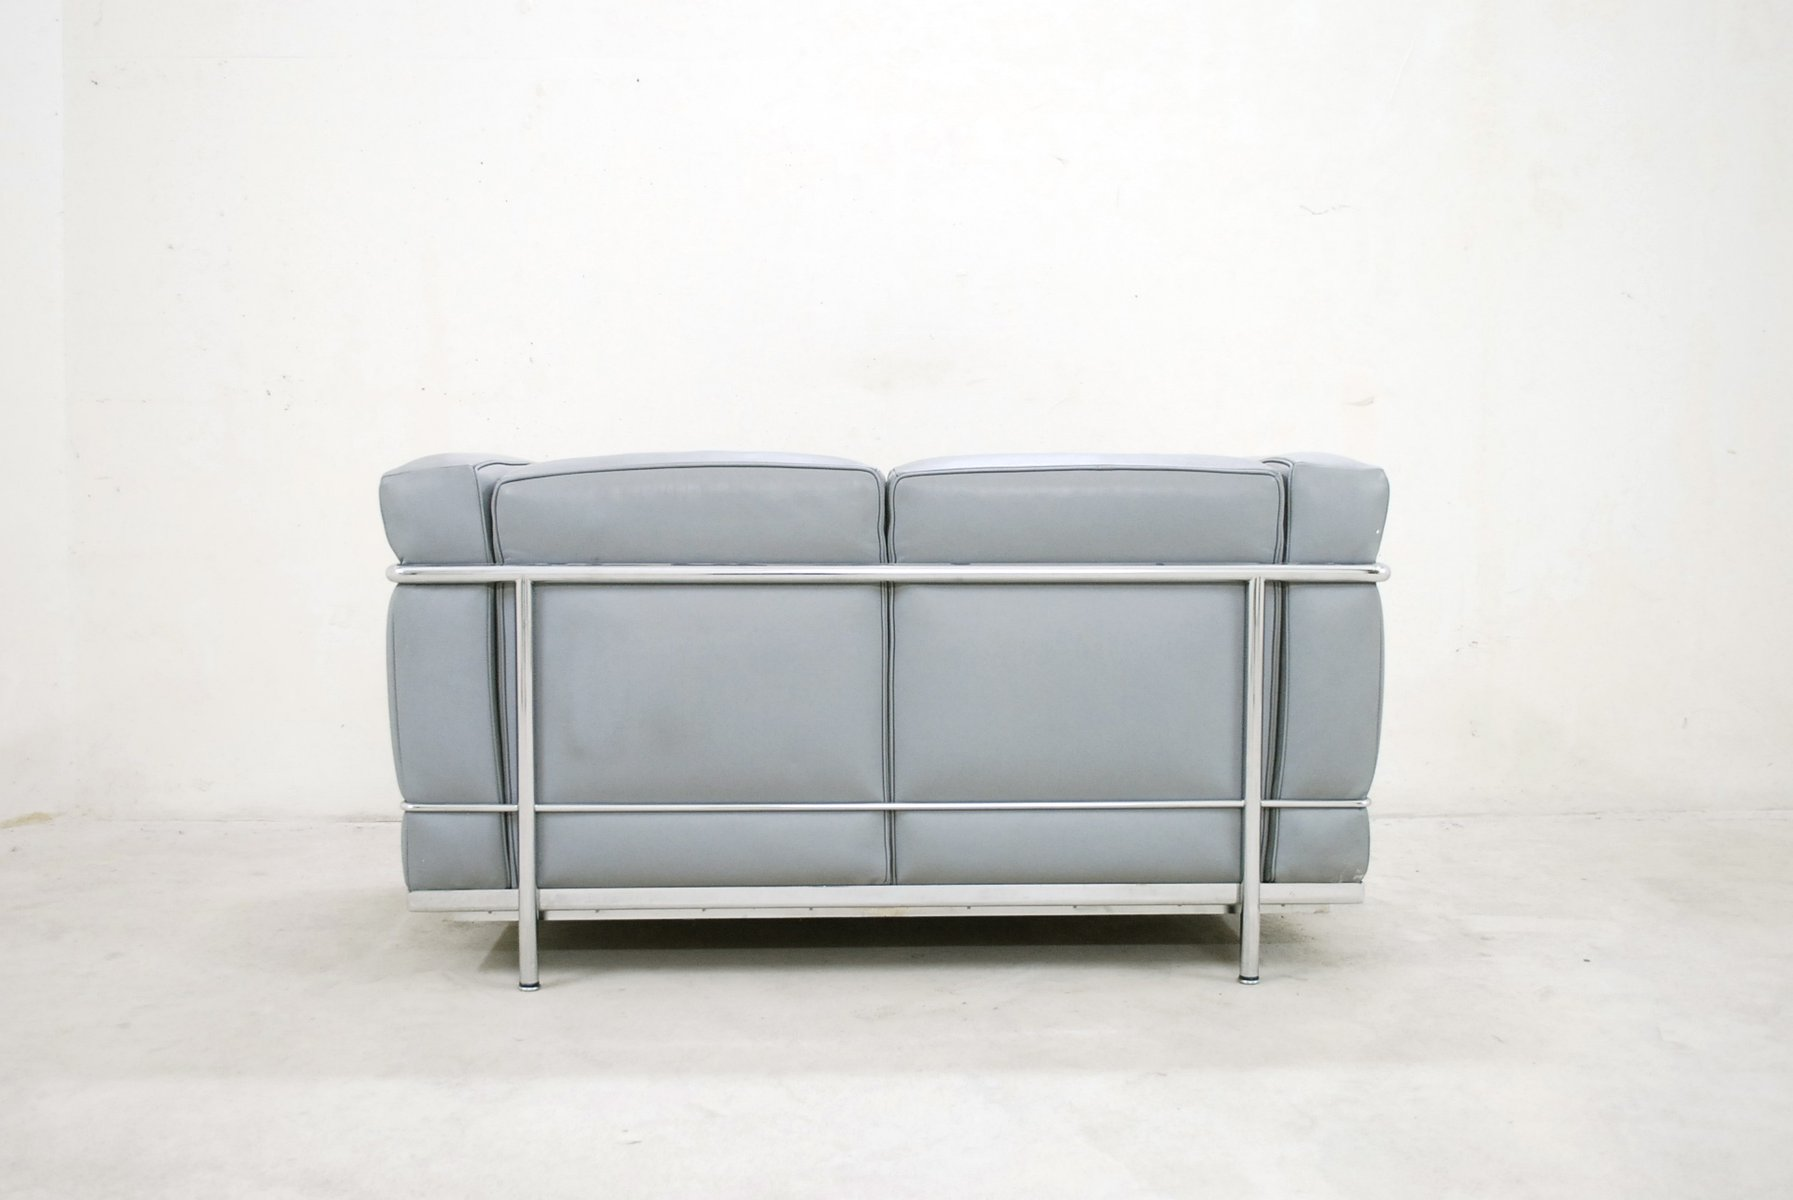 Model lc2 leather sofa by le corbusier for cassina 1985 for Sofa 8 cassina